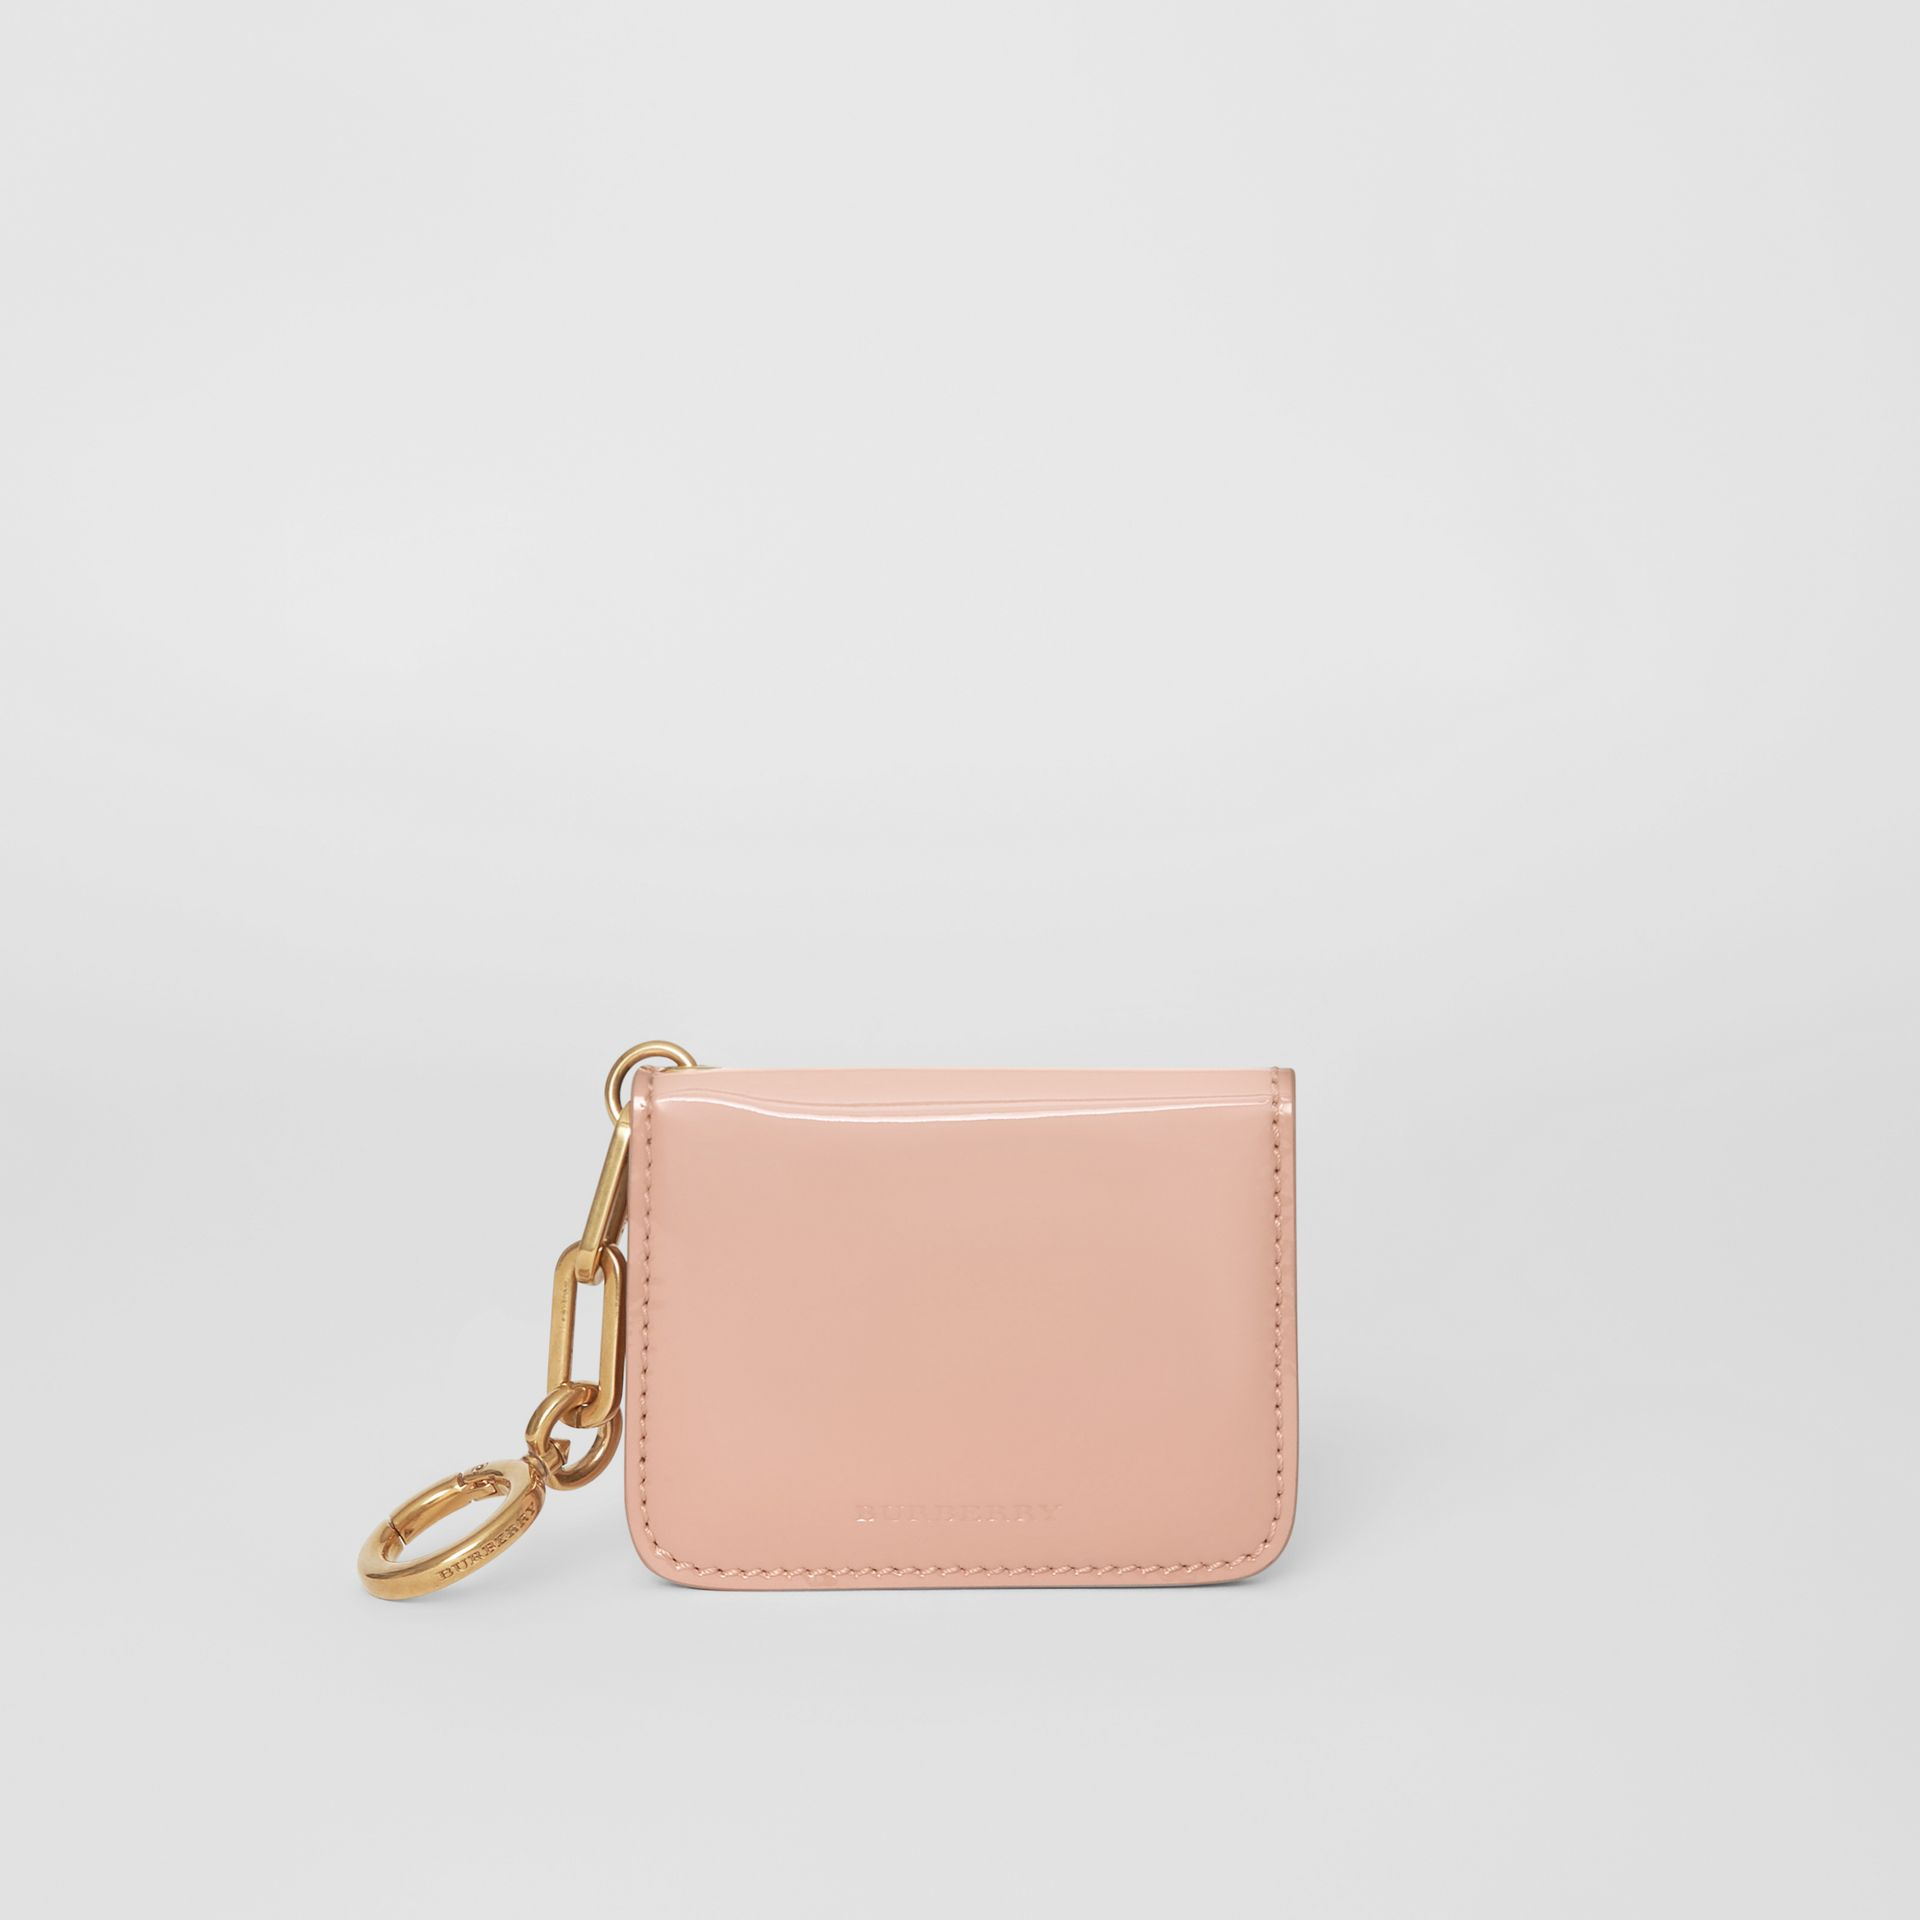 Link Detail Patent Leather ID Card Case Charm in Pale Fawn Pink - Women | Burberry United States - gallery image 5